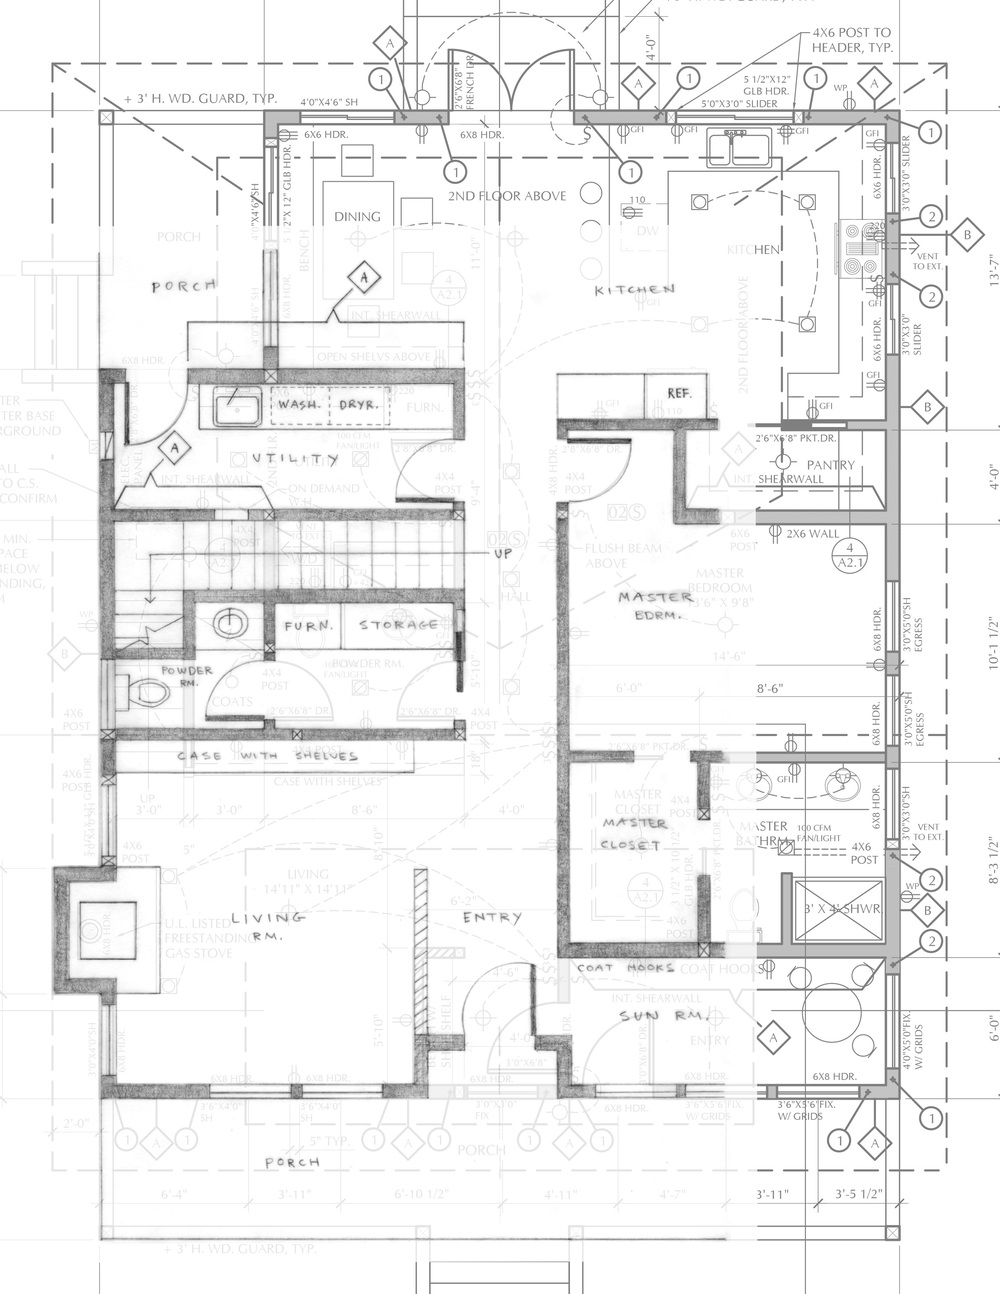 Drawing of first floor with proposed changes overlaid on top of the architects' plan.